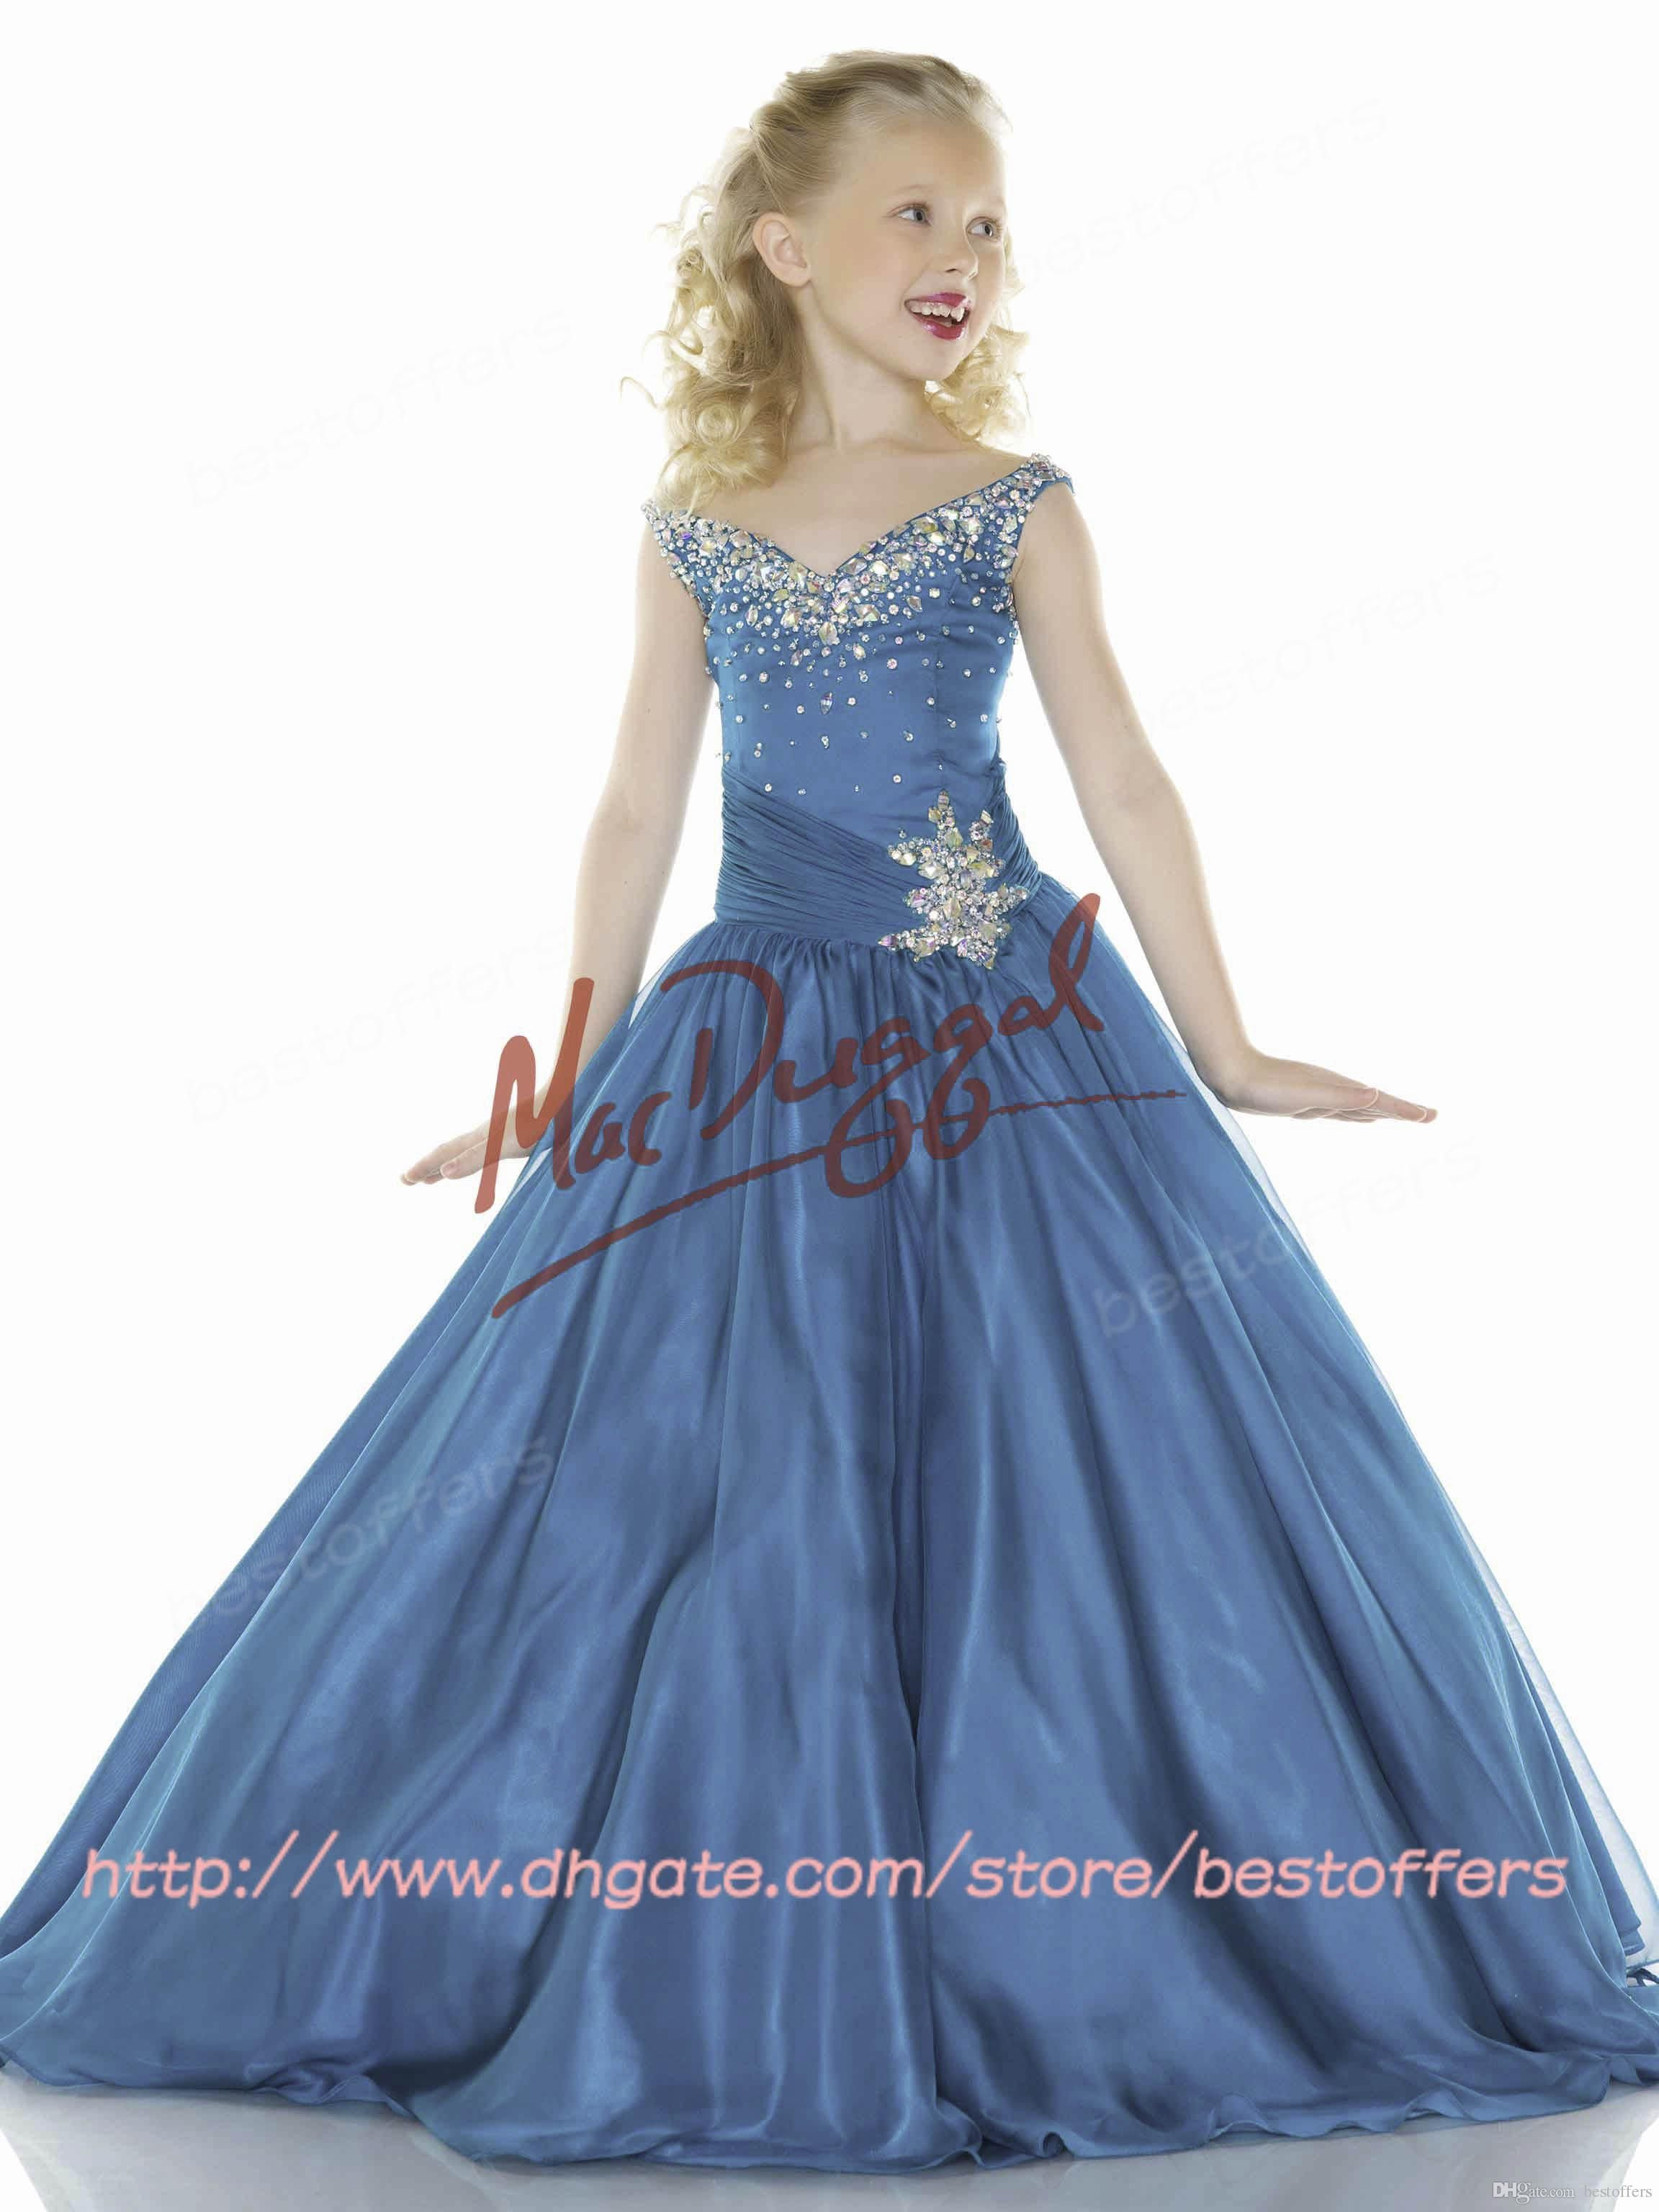 Pool Blue Cheap Bridesmaid Dresses 2017 Sweetheart with Beads ...